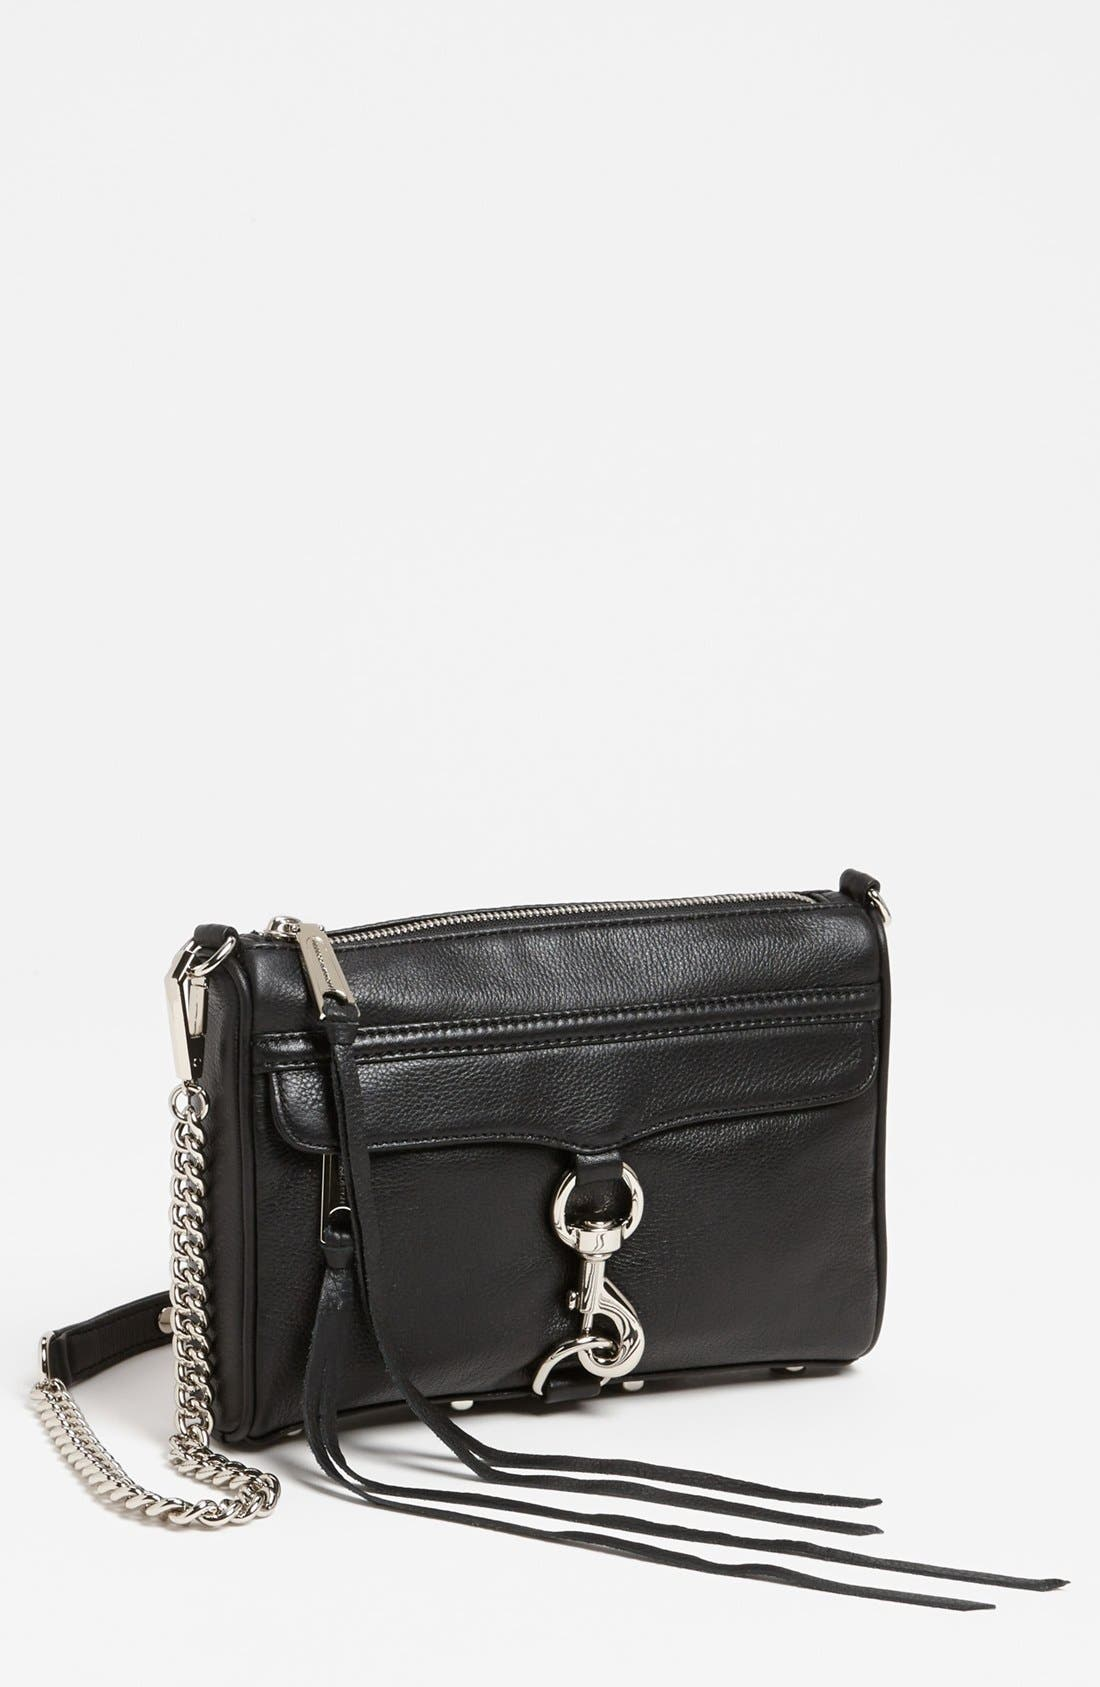 Alternate Image 1 Selected - Rebecca Minkoff 'Mini MAC' Convertible Crossbody Bag